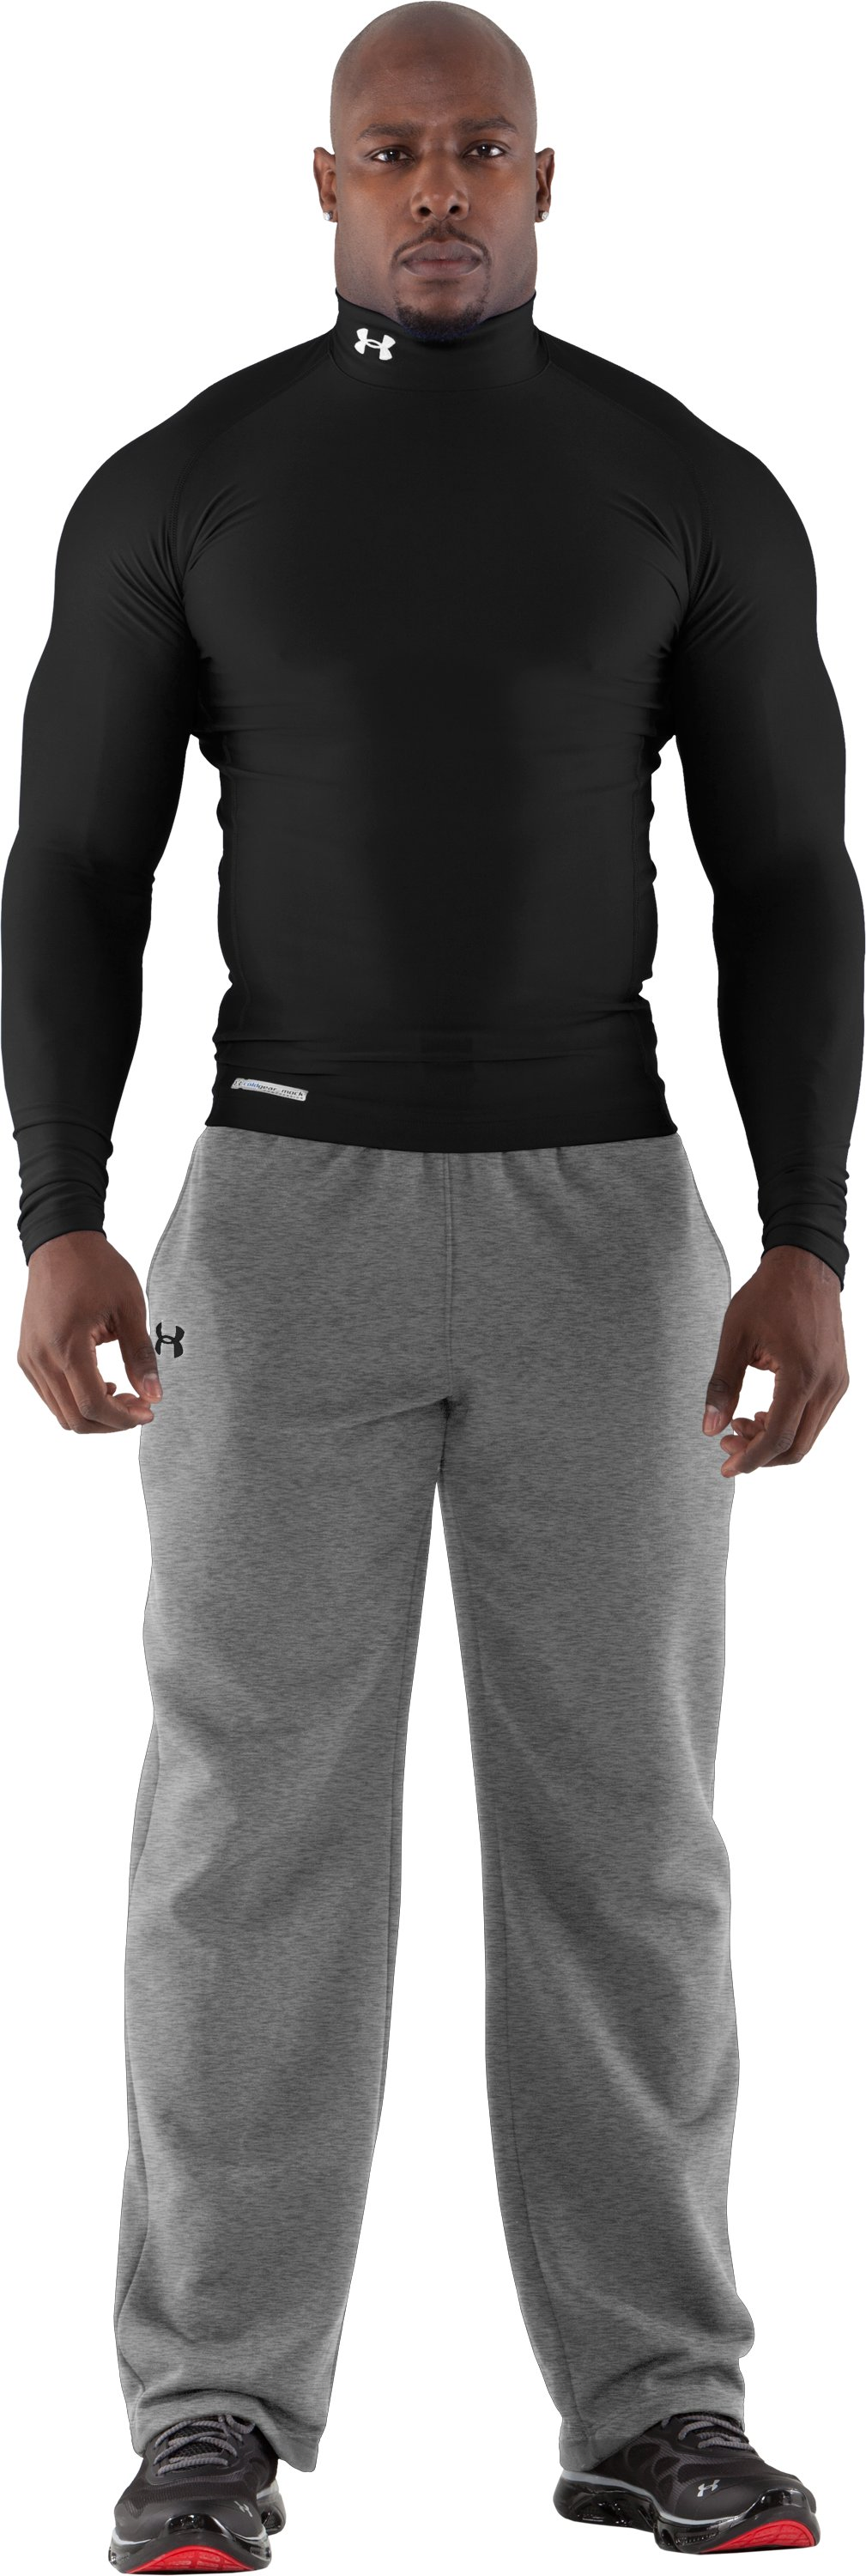 Men's ColdGear® Evo Long Sleeve Compression Mock, Black , zoomed image